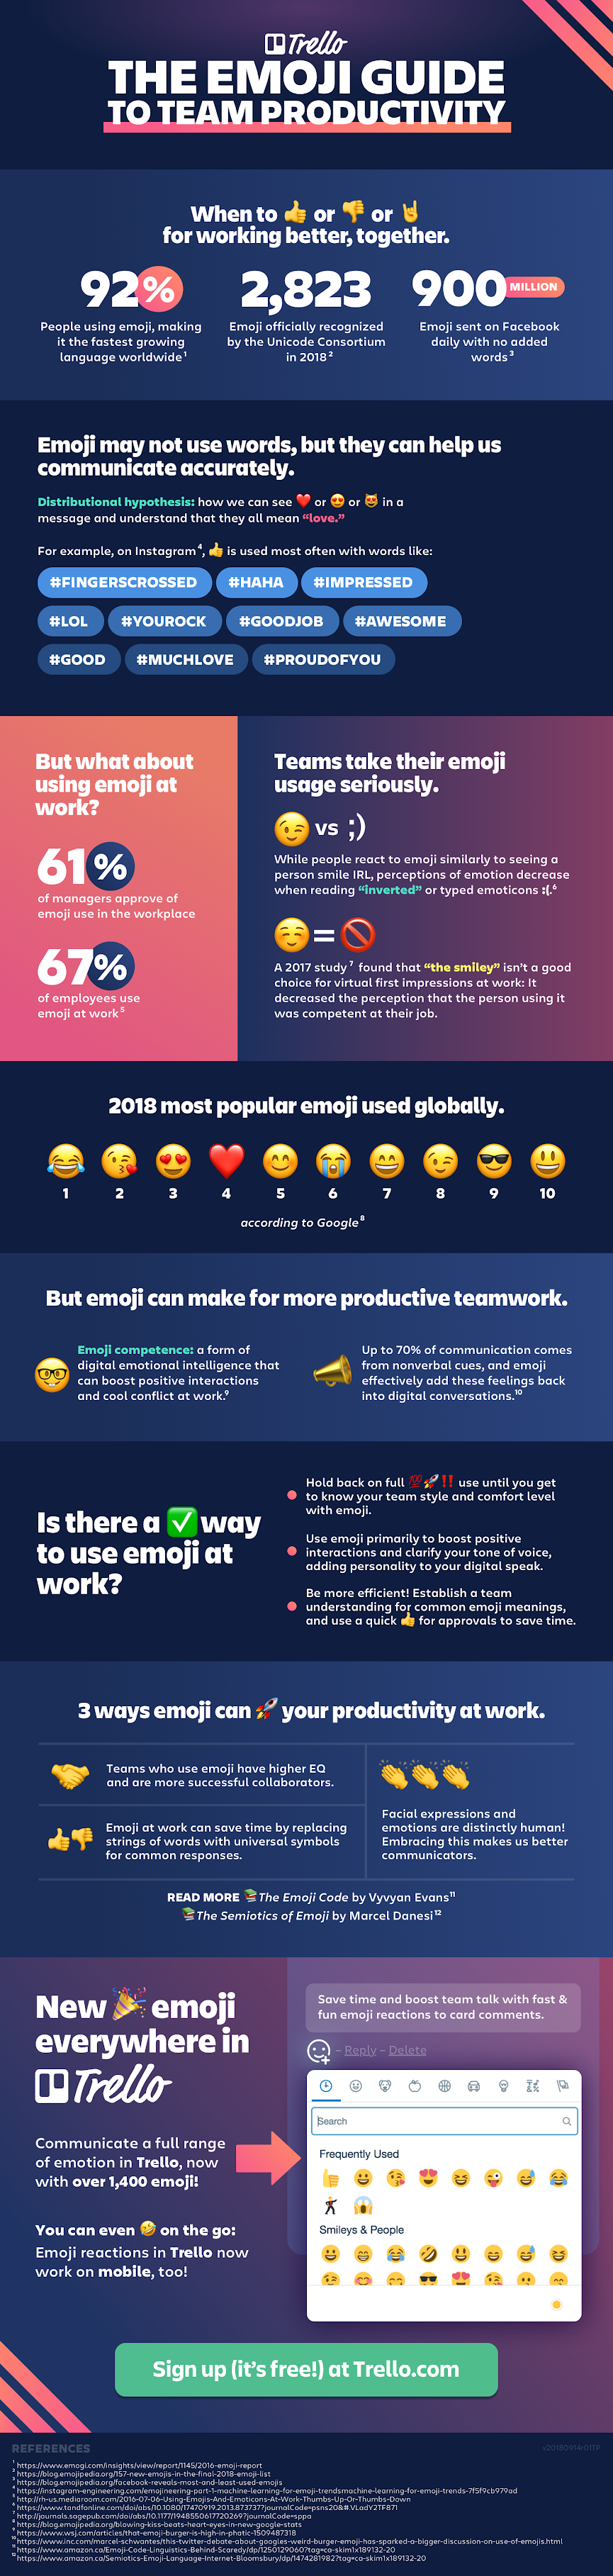 Use Emojis to Make your Team more Productive